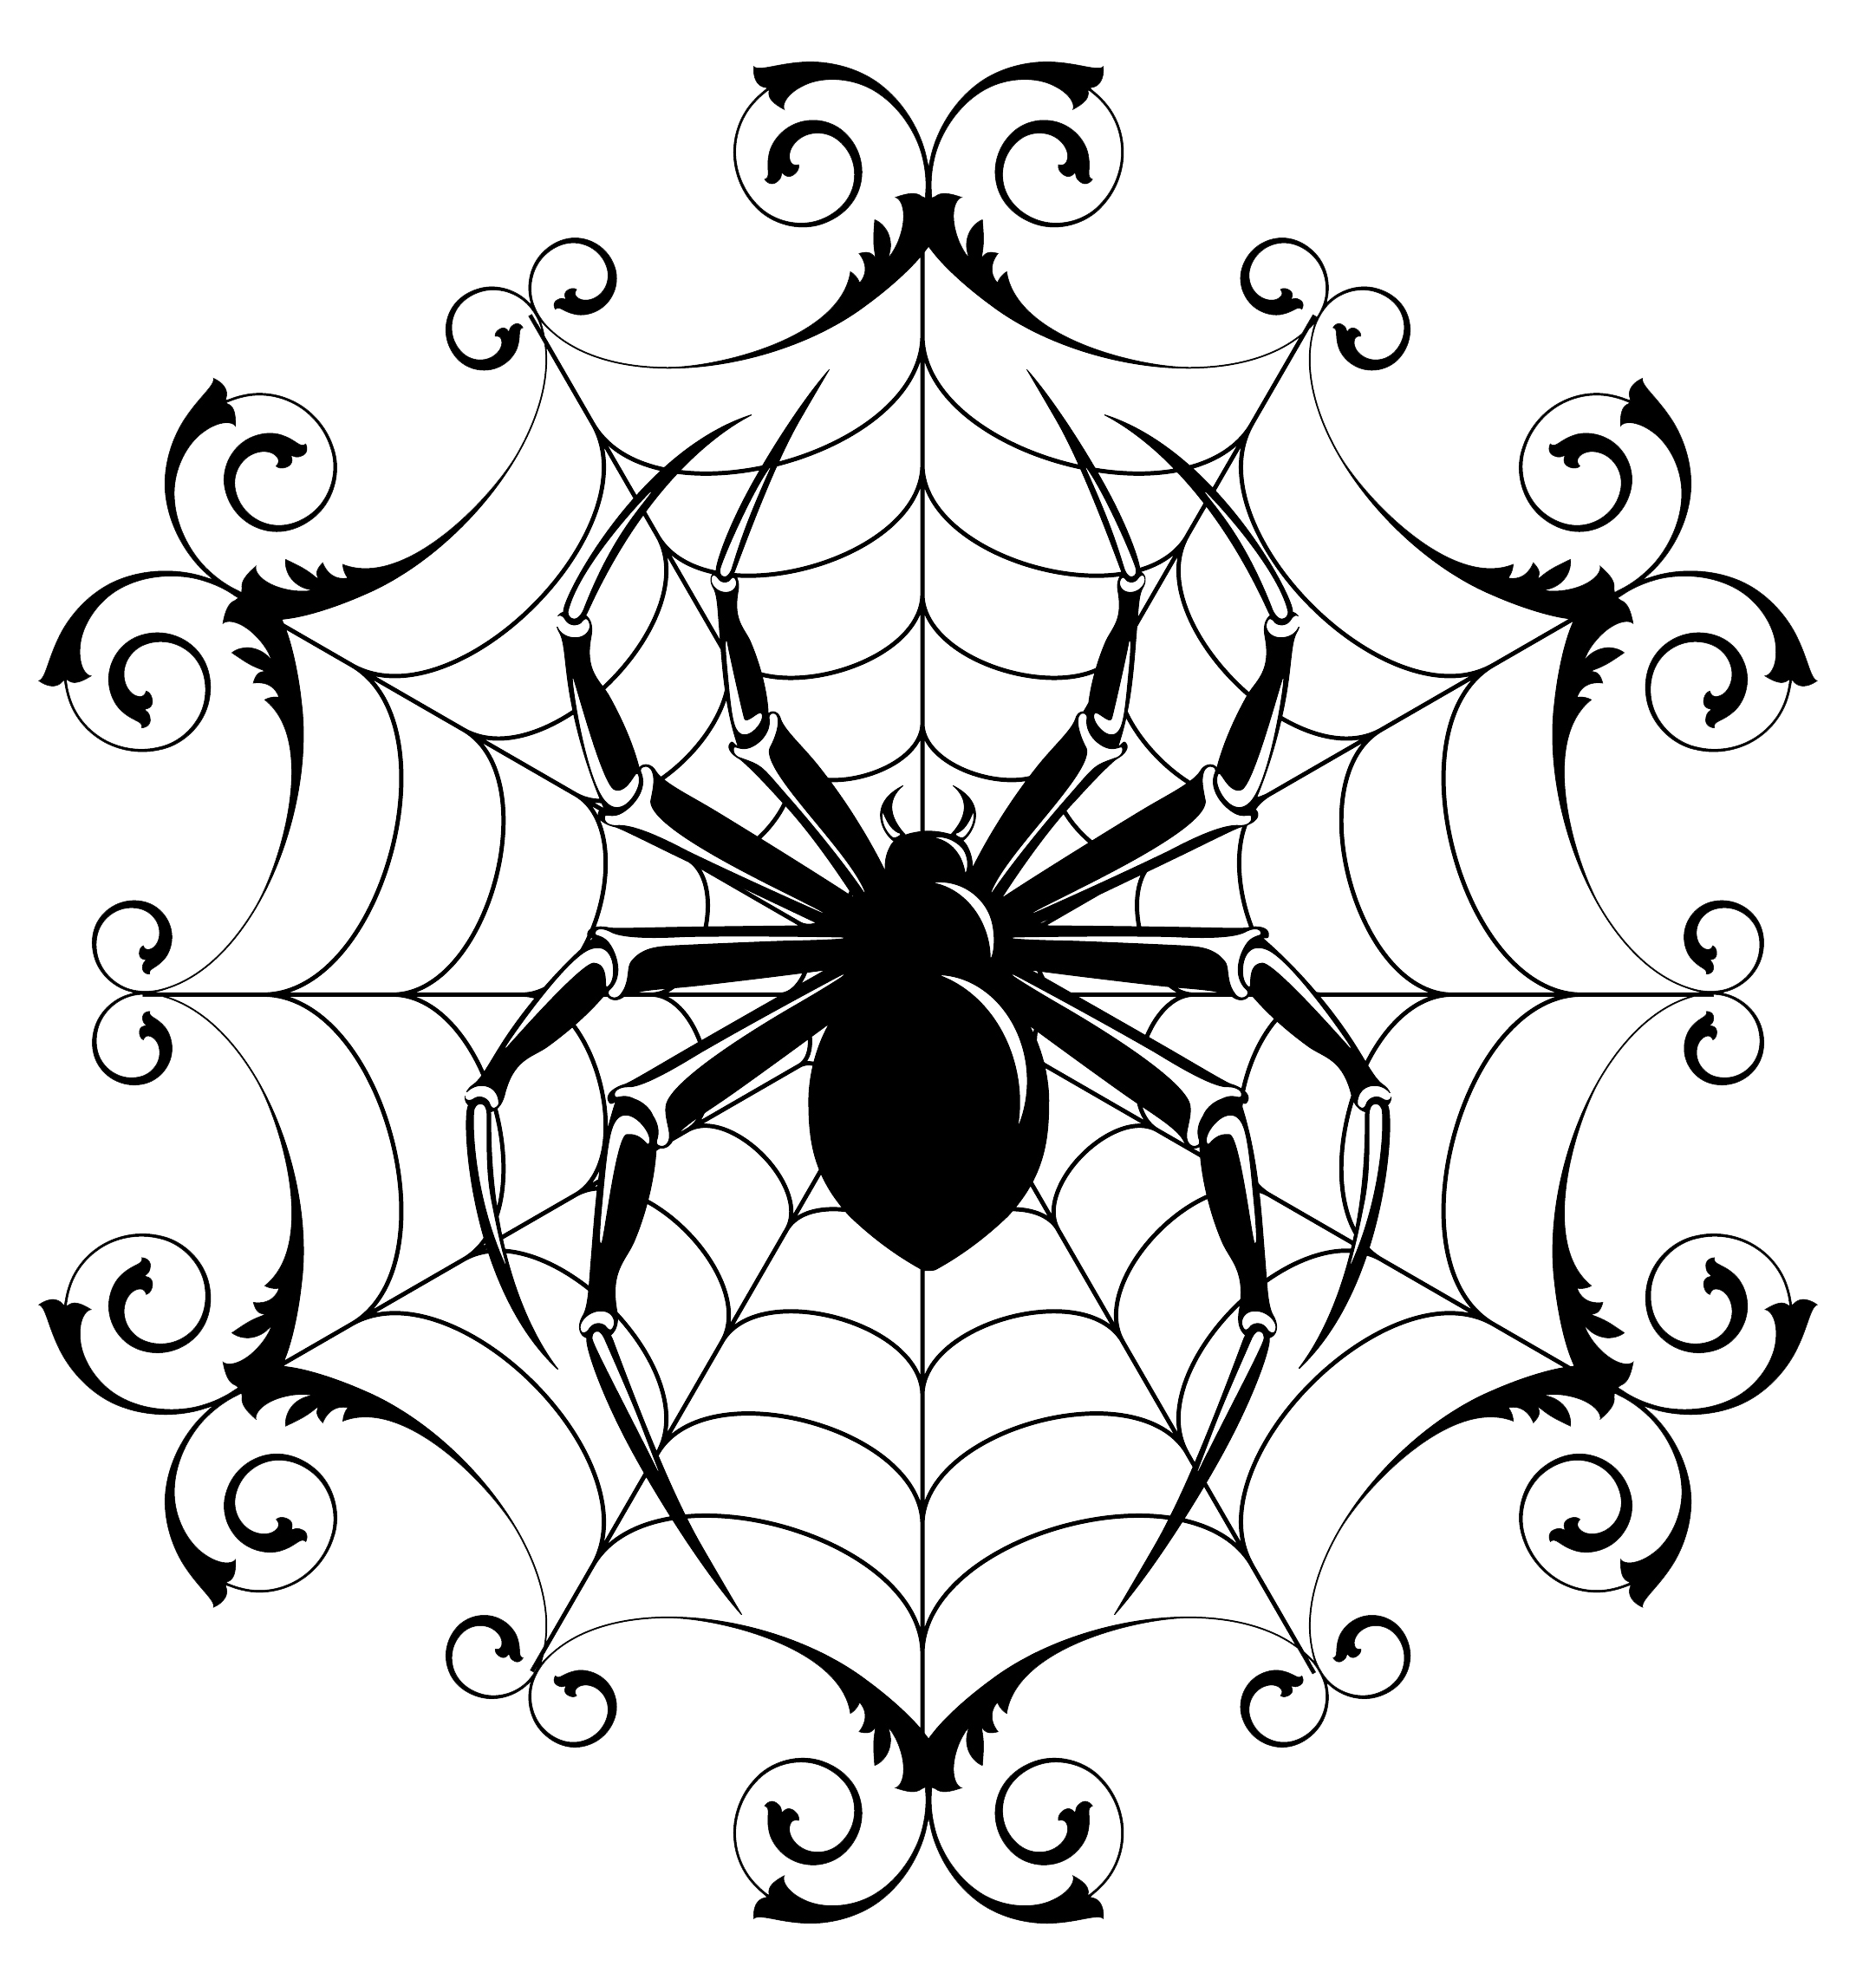 Spider Drawing Halloween - ClipArt Best - ClipArt Best